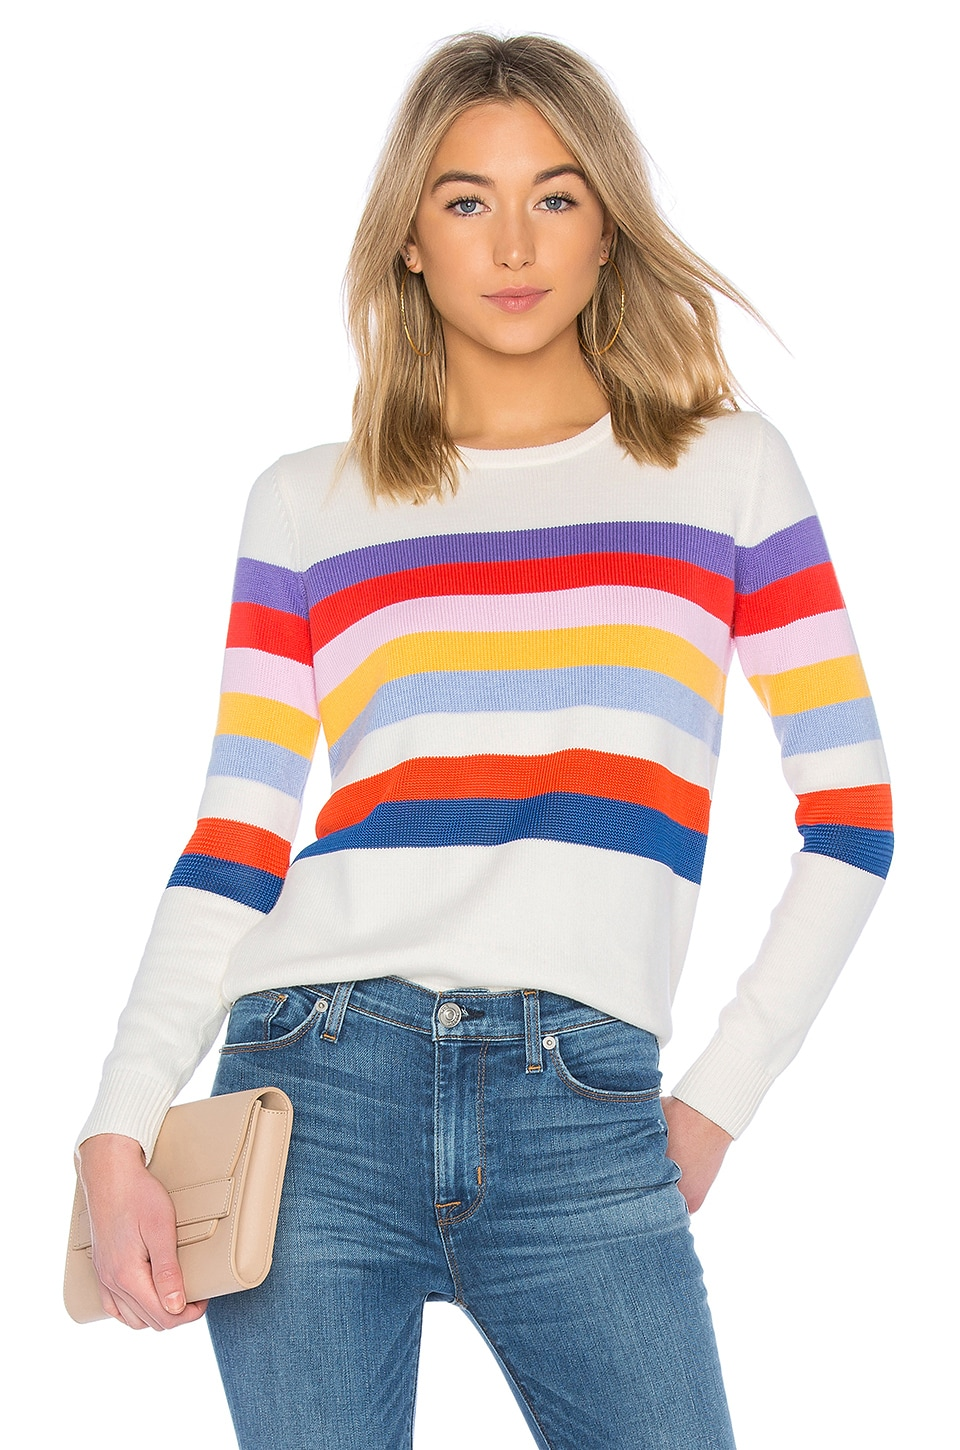 Kule The Day Trip Sweater in Cream Multi